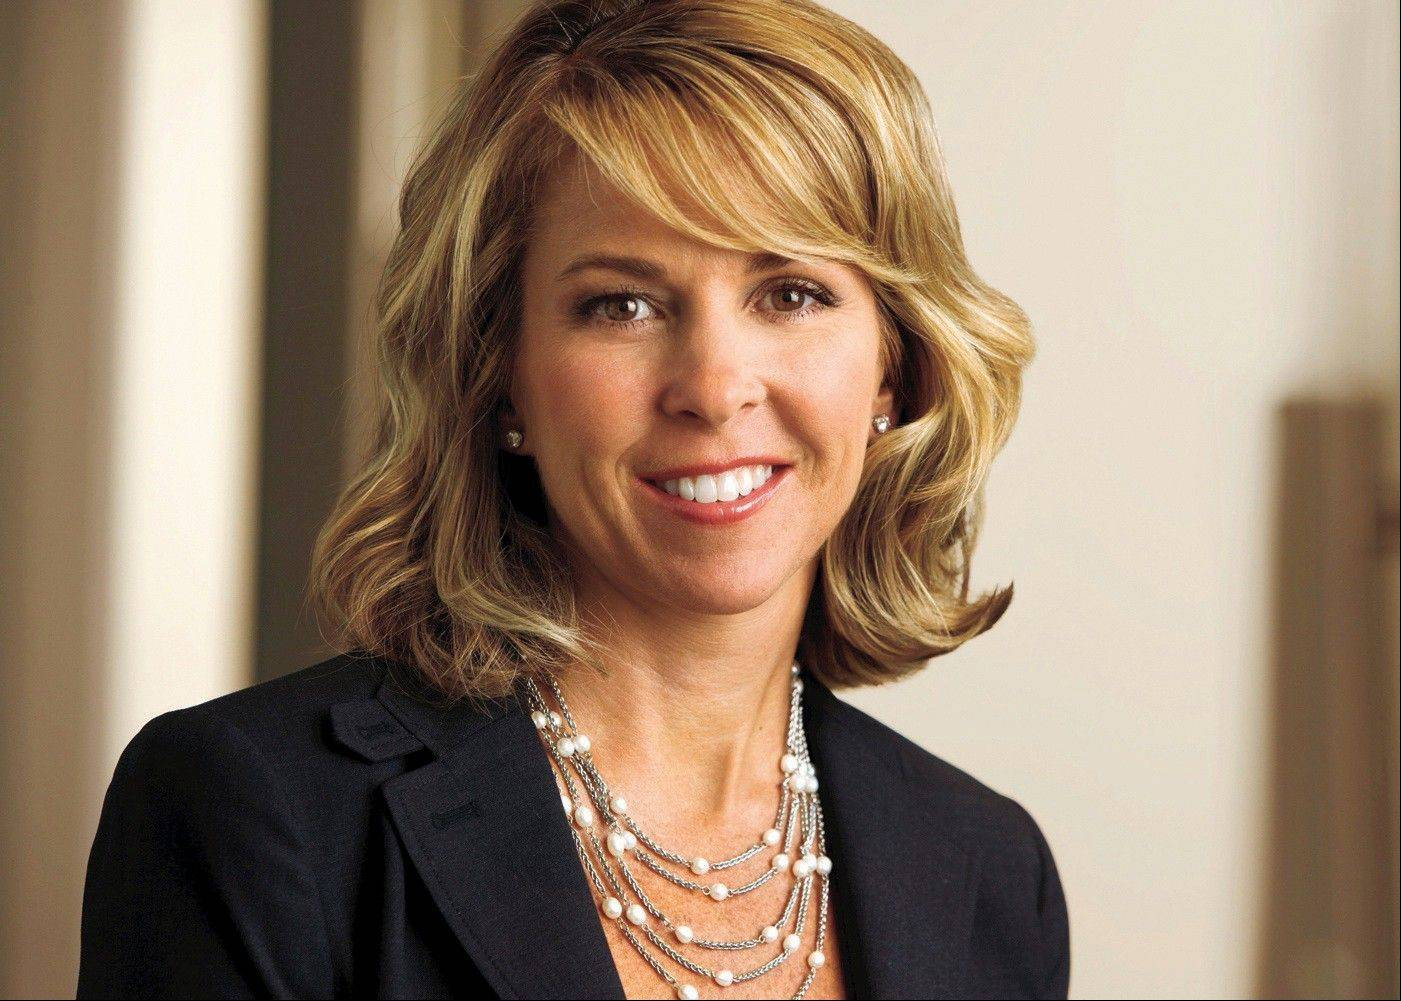 Liz Ann Sonders, chief investment strategist for Charles Schwab Corp., believes that in 2012 housing is recovering to such an extent that it will be one of the key drivers of the economy in 2013 and could add as much as 1 percentage point to growth.